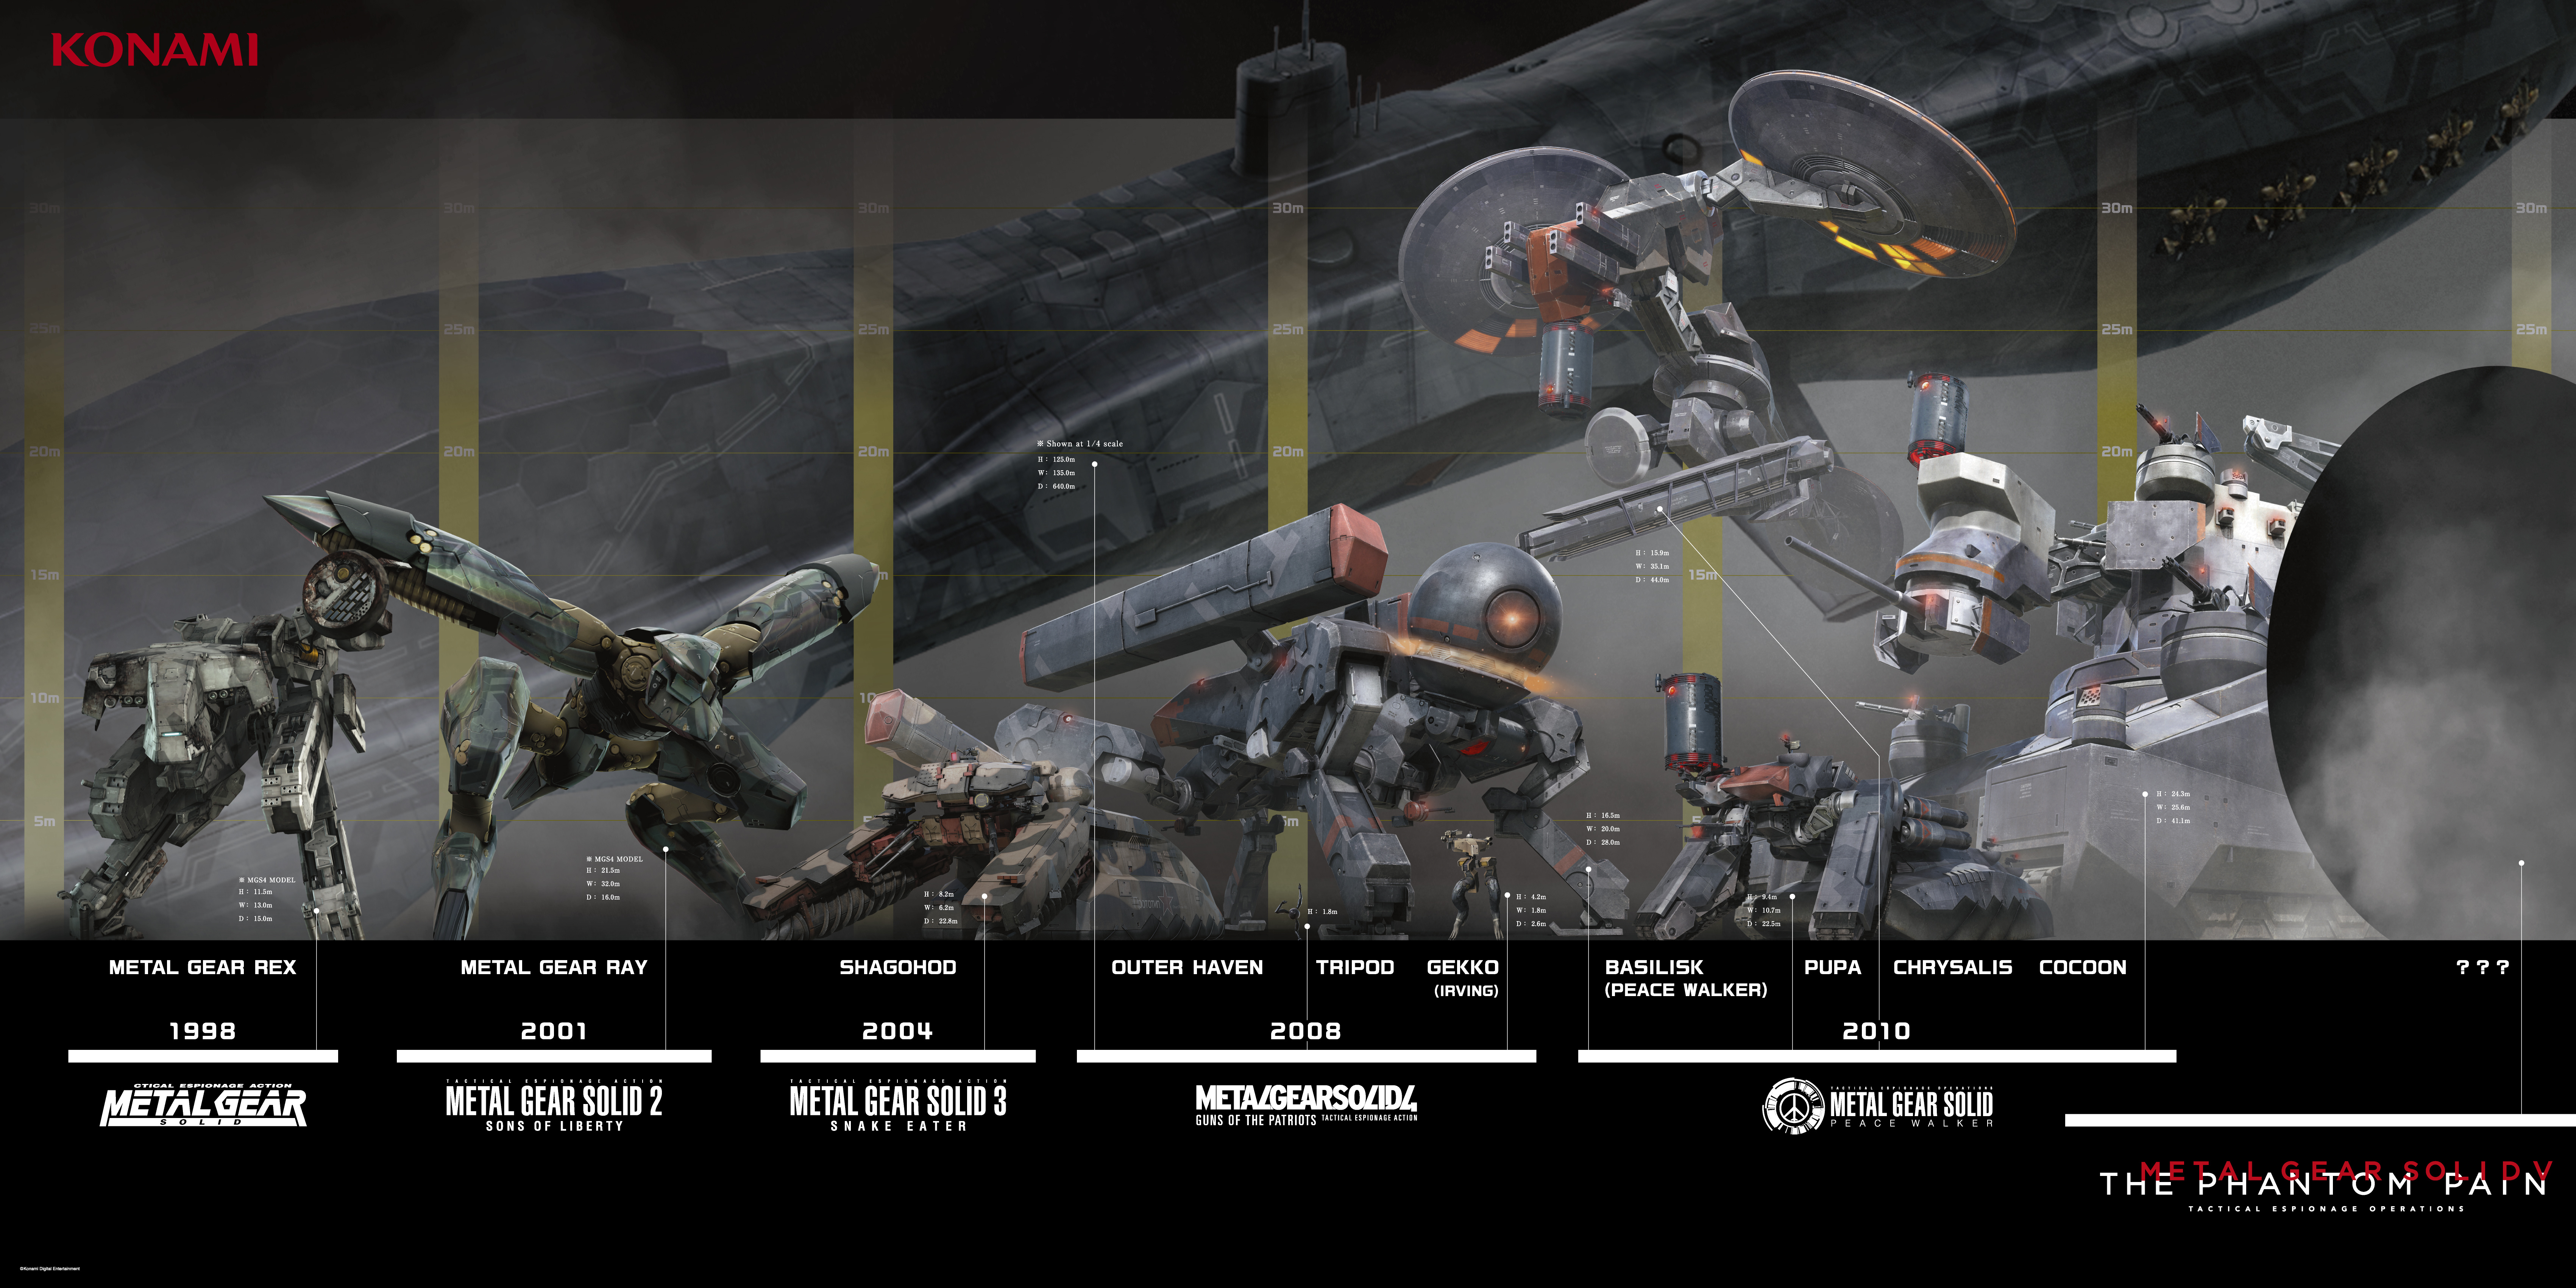 All The Metal Gears To Scale Aww Look At The Gekko Metalgearsolid